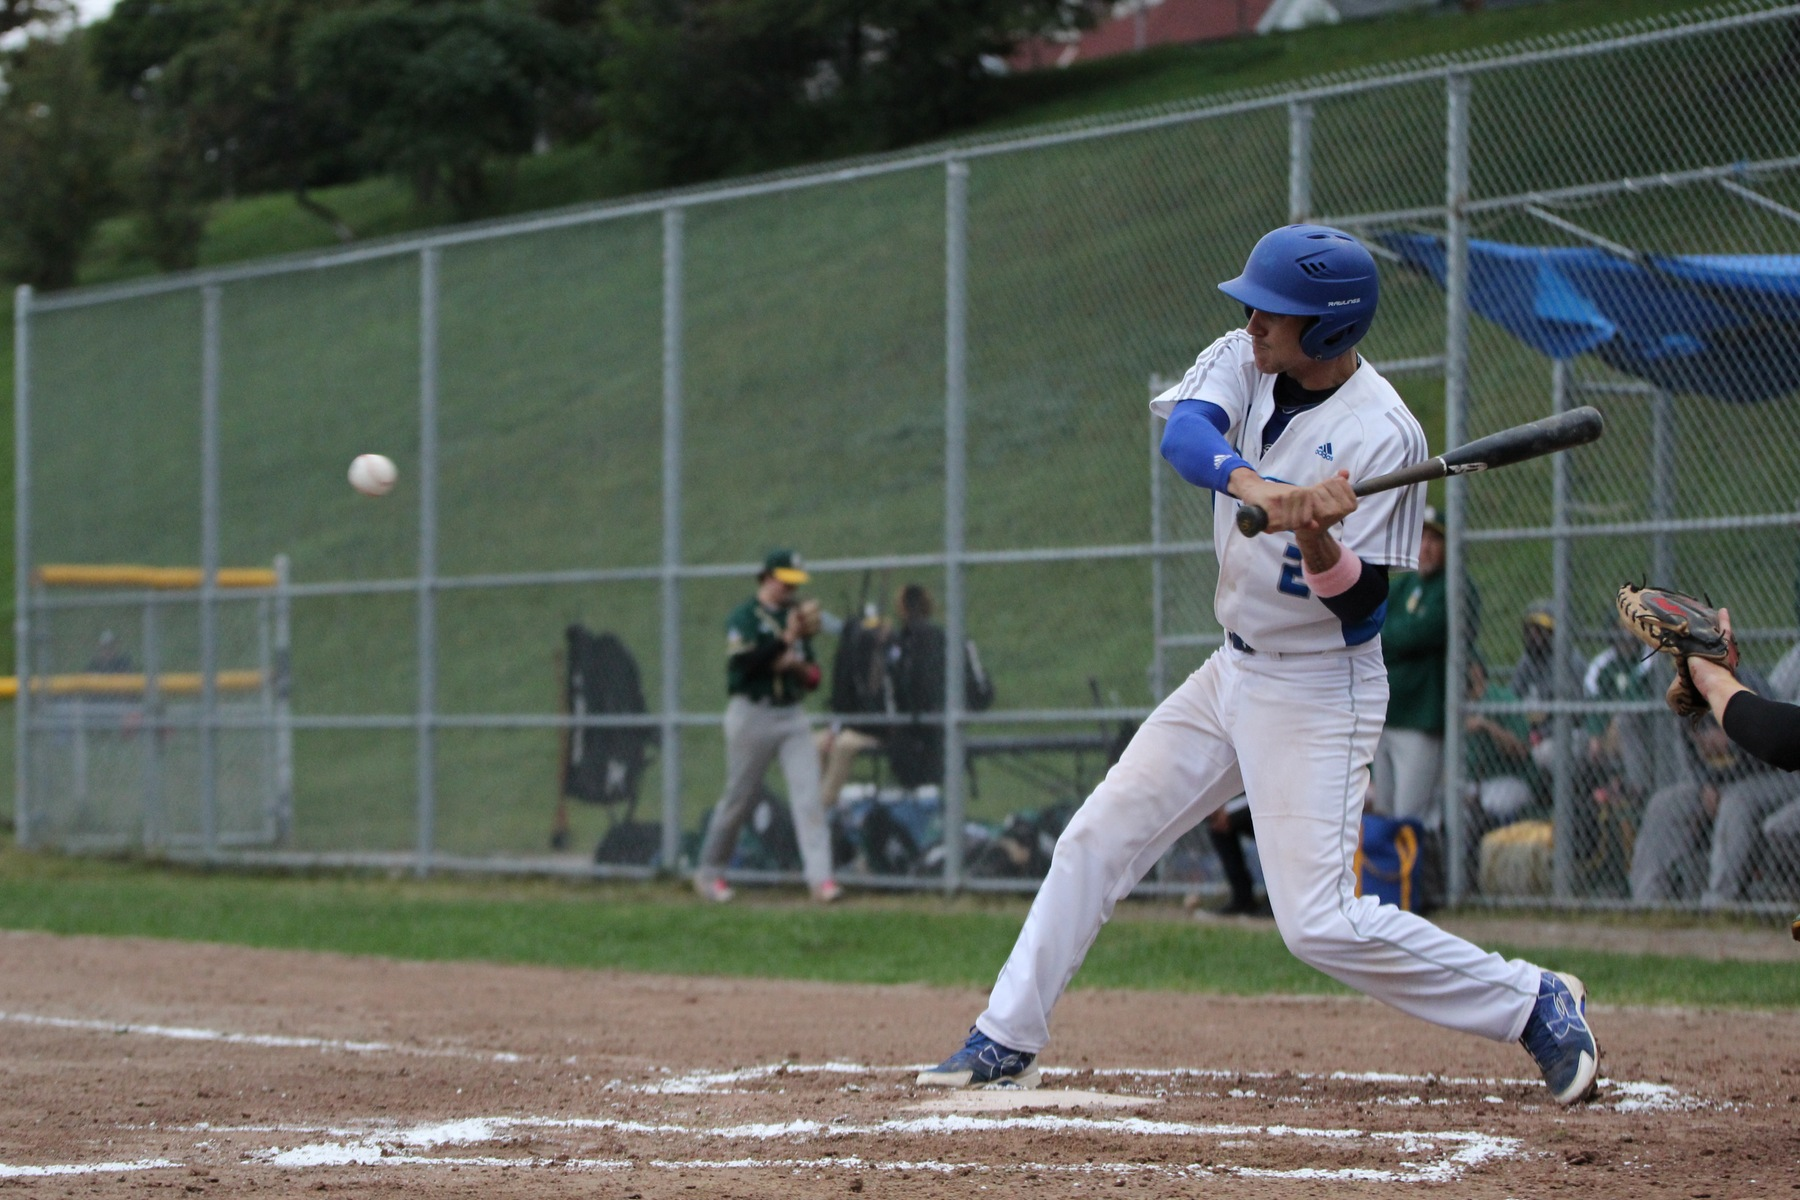 DESPITE LAMANNA'S EXTRA INNINGS GEM HUSKIES BASEBALL DROP PAIR TO LORDS